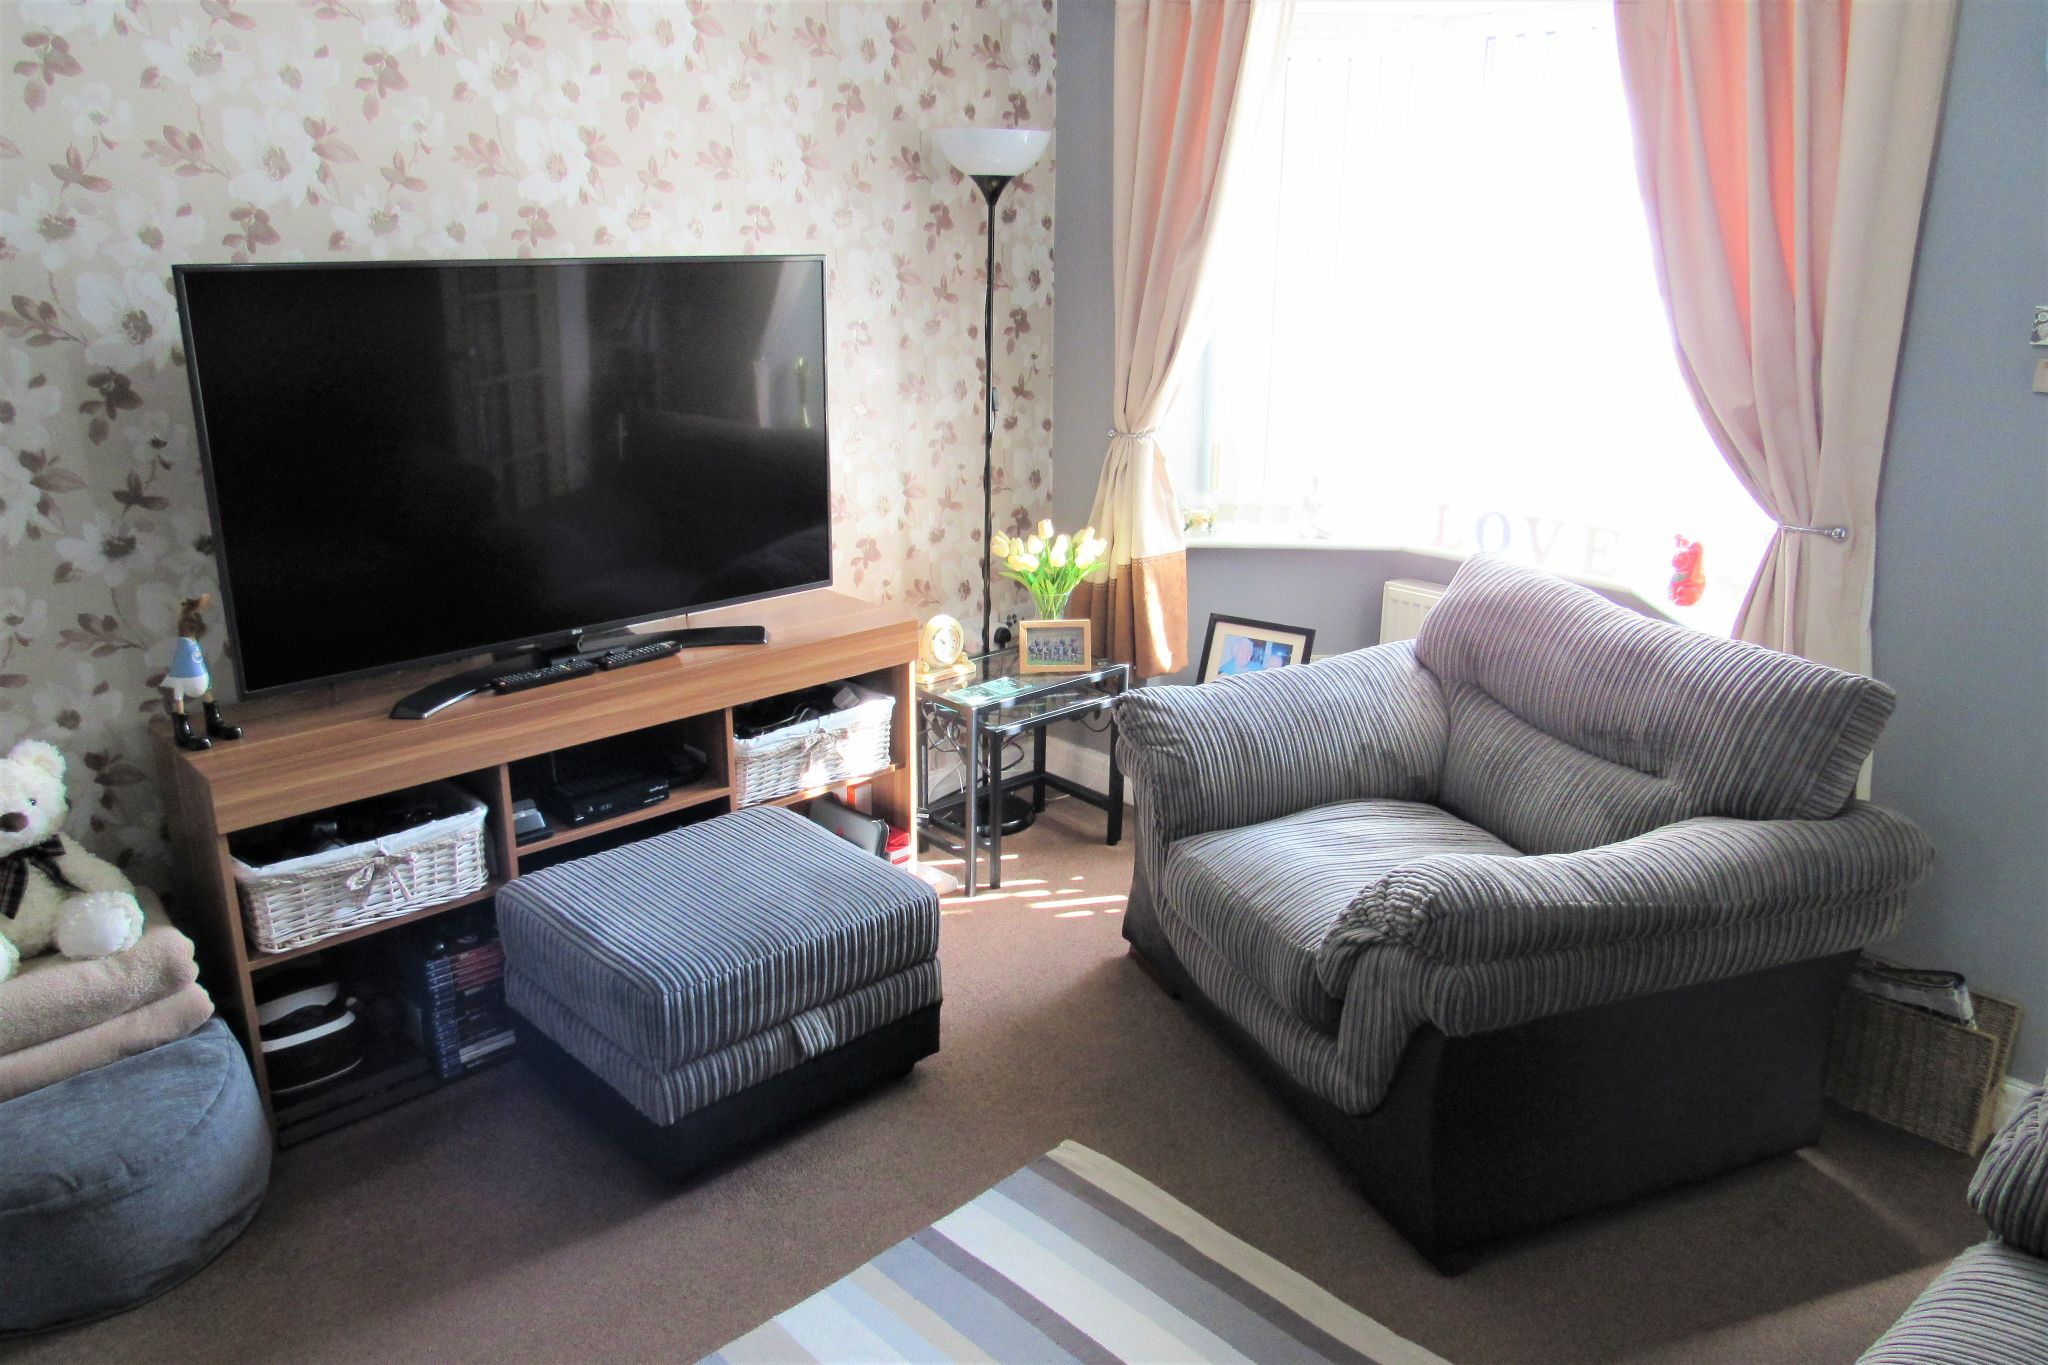 2 bedroom semi-detached house SSTC in Manchester - Photograph 6.